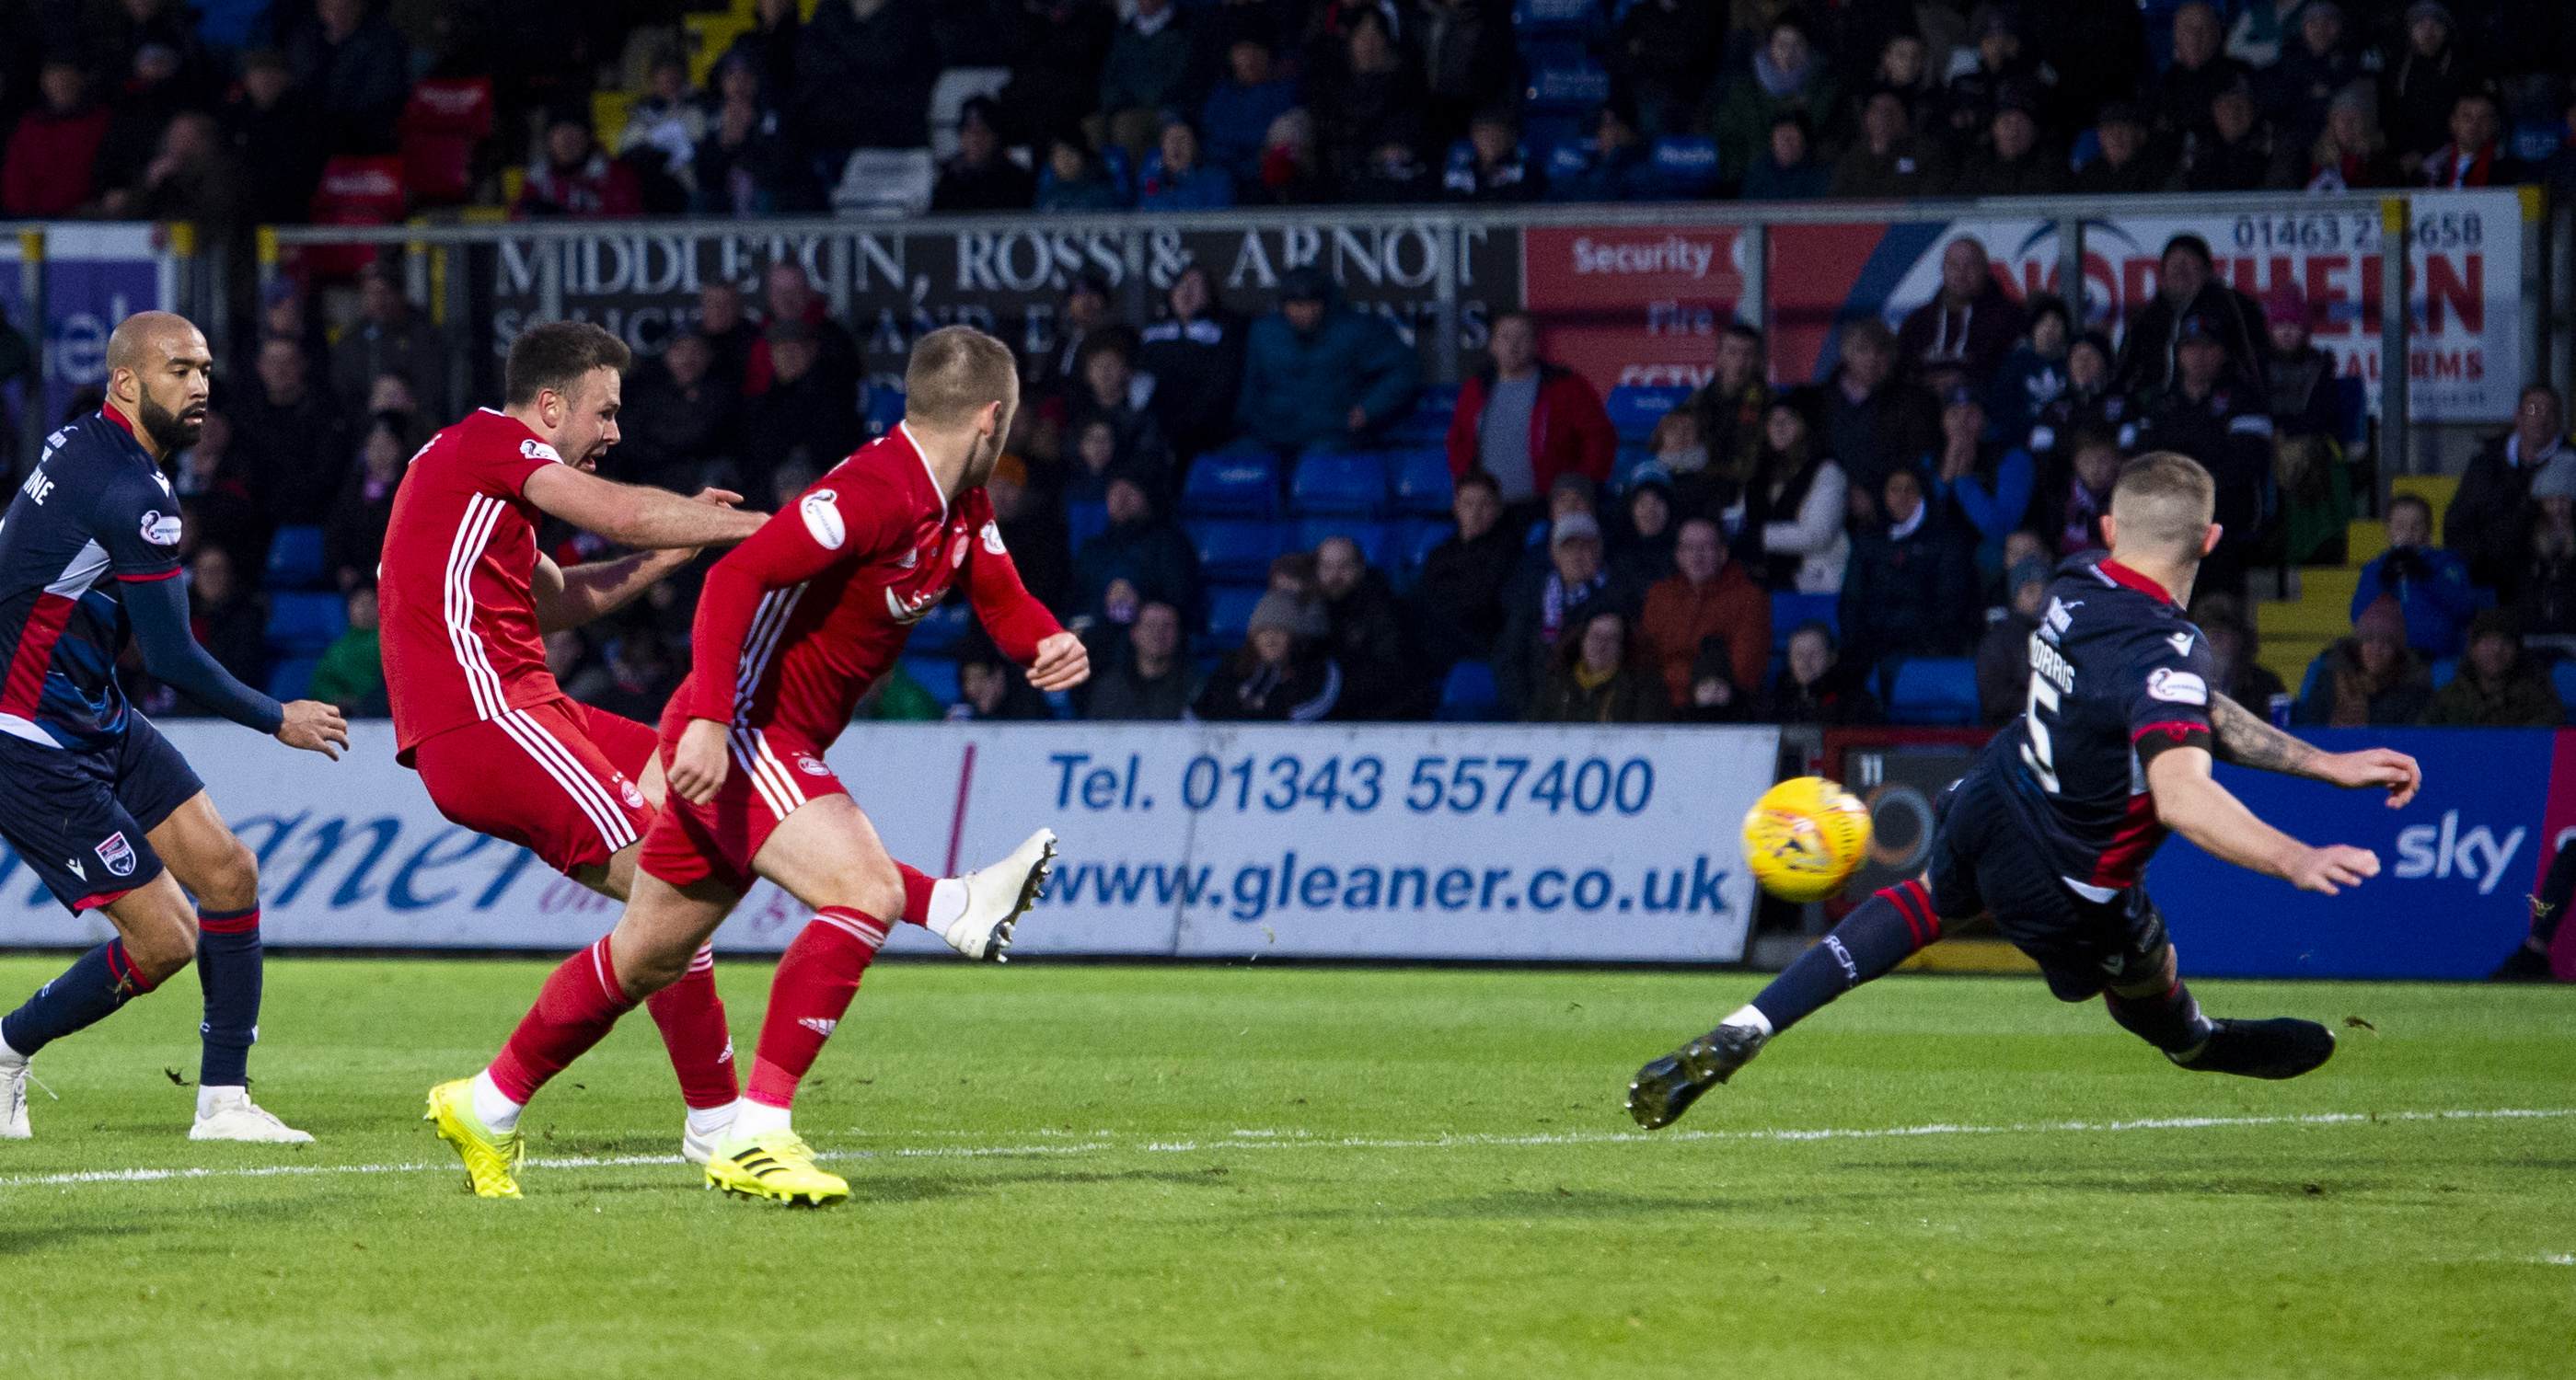 Andy Considine, left, scores to make it 3-1 during the Ladbrokes Premiership match between Ross County and Aberdeen.